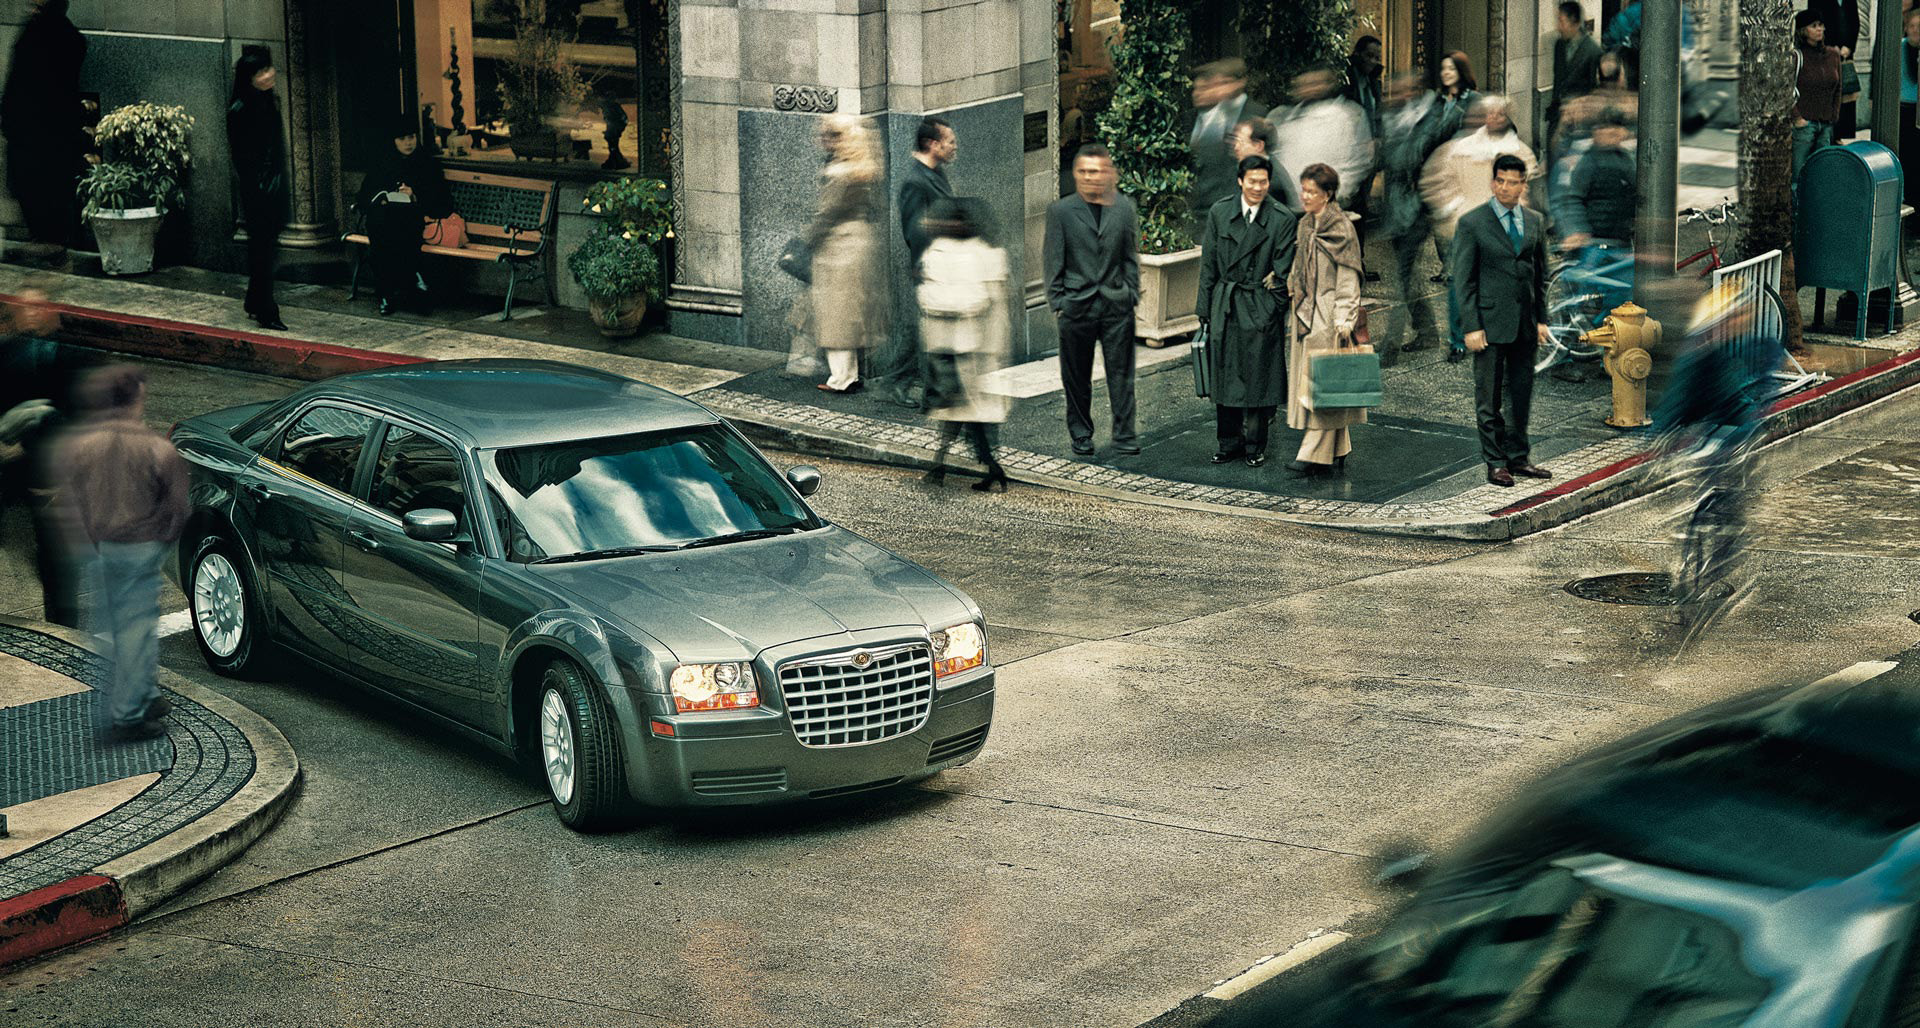 Photograph Chrysler _C300_Street_Scene by Nigel Harniman on 500px